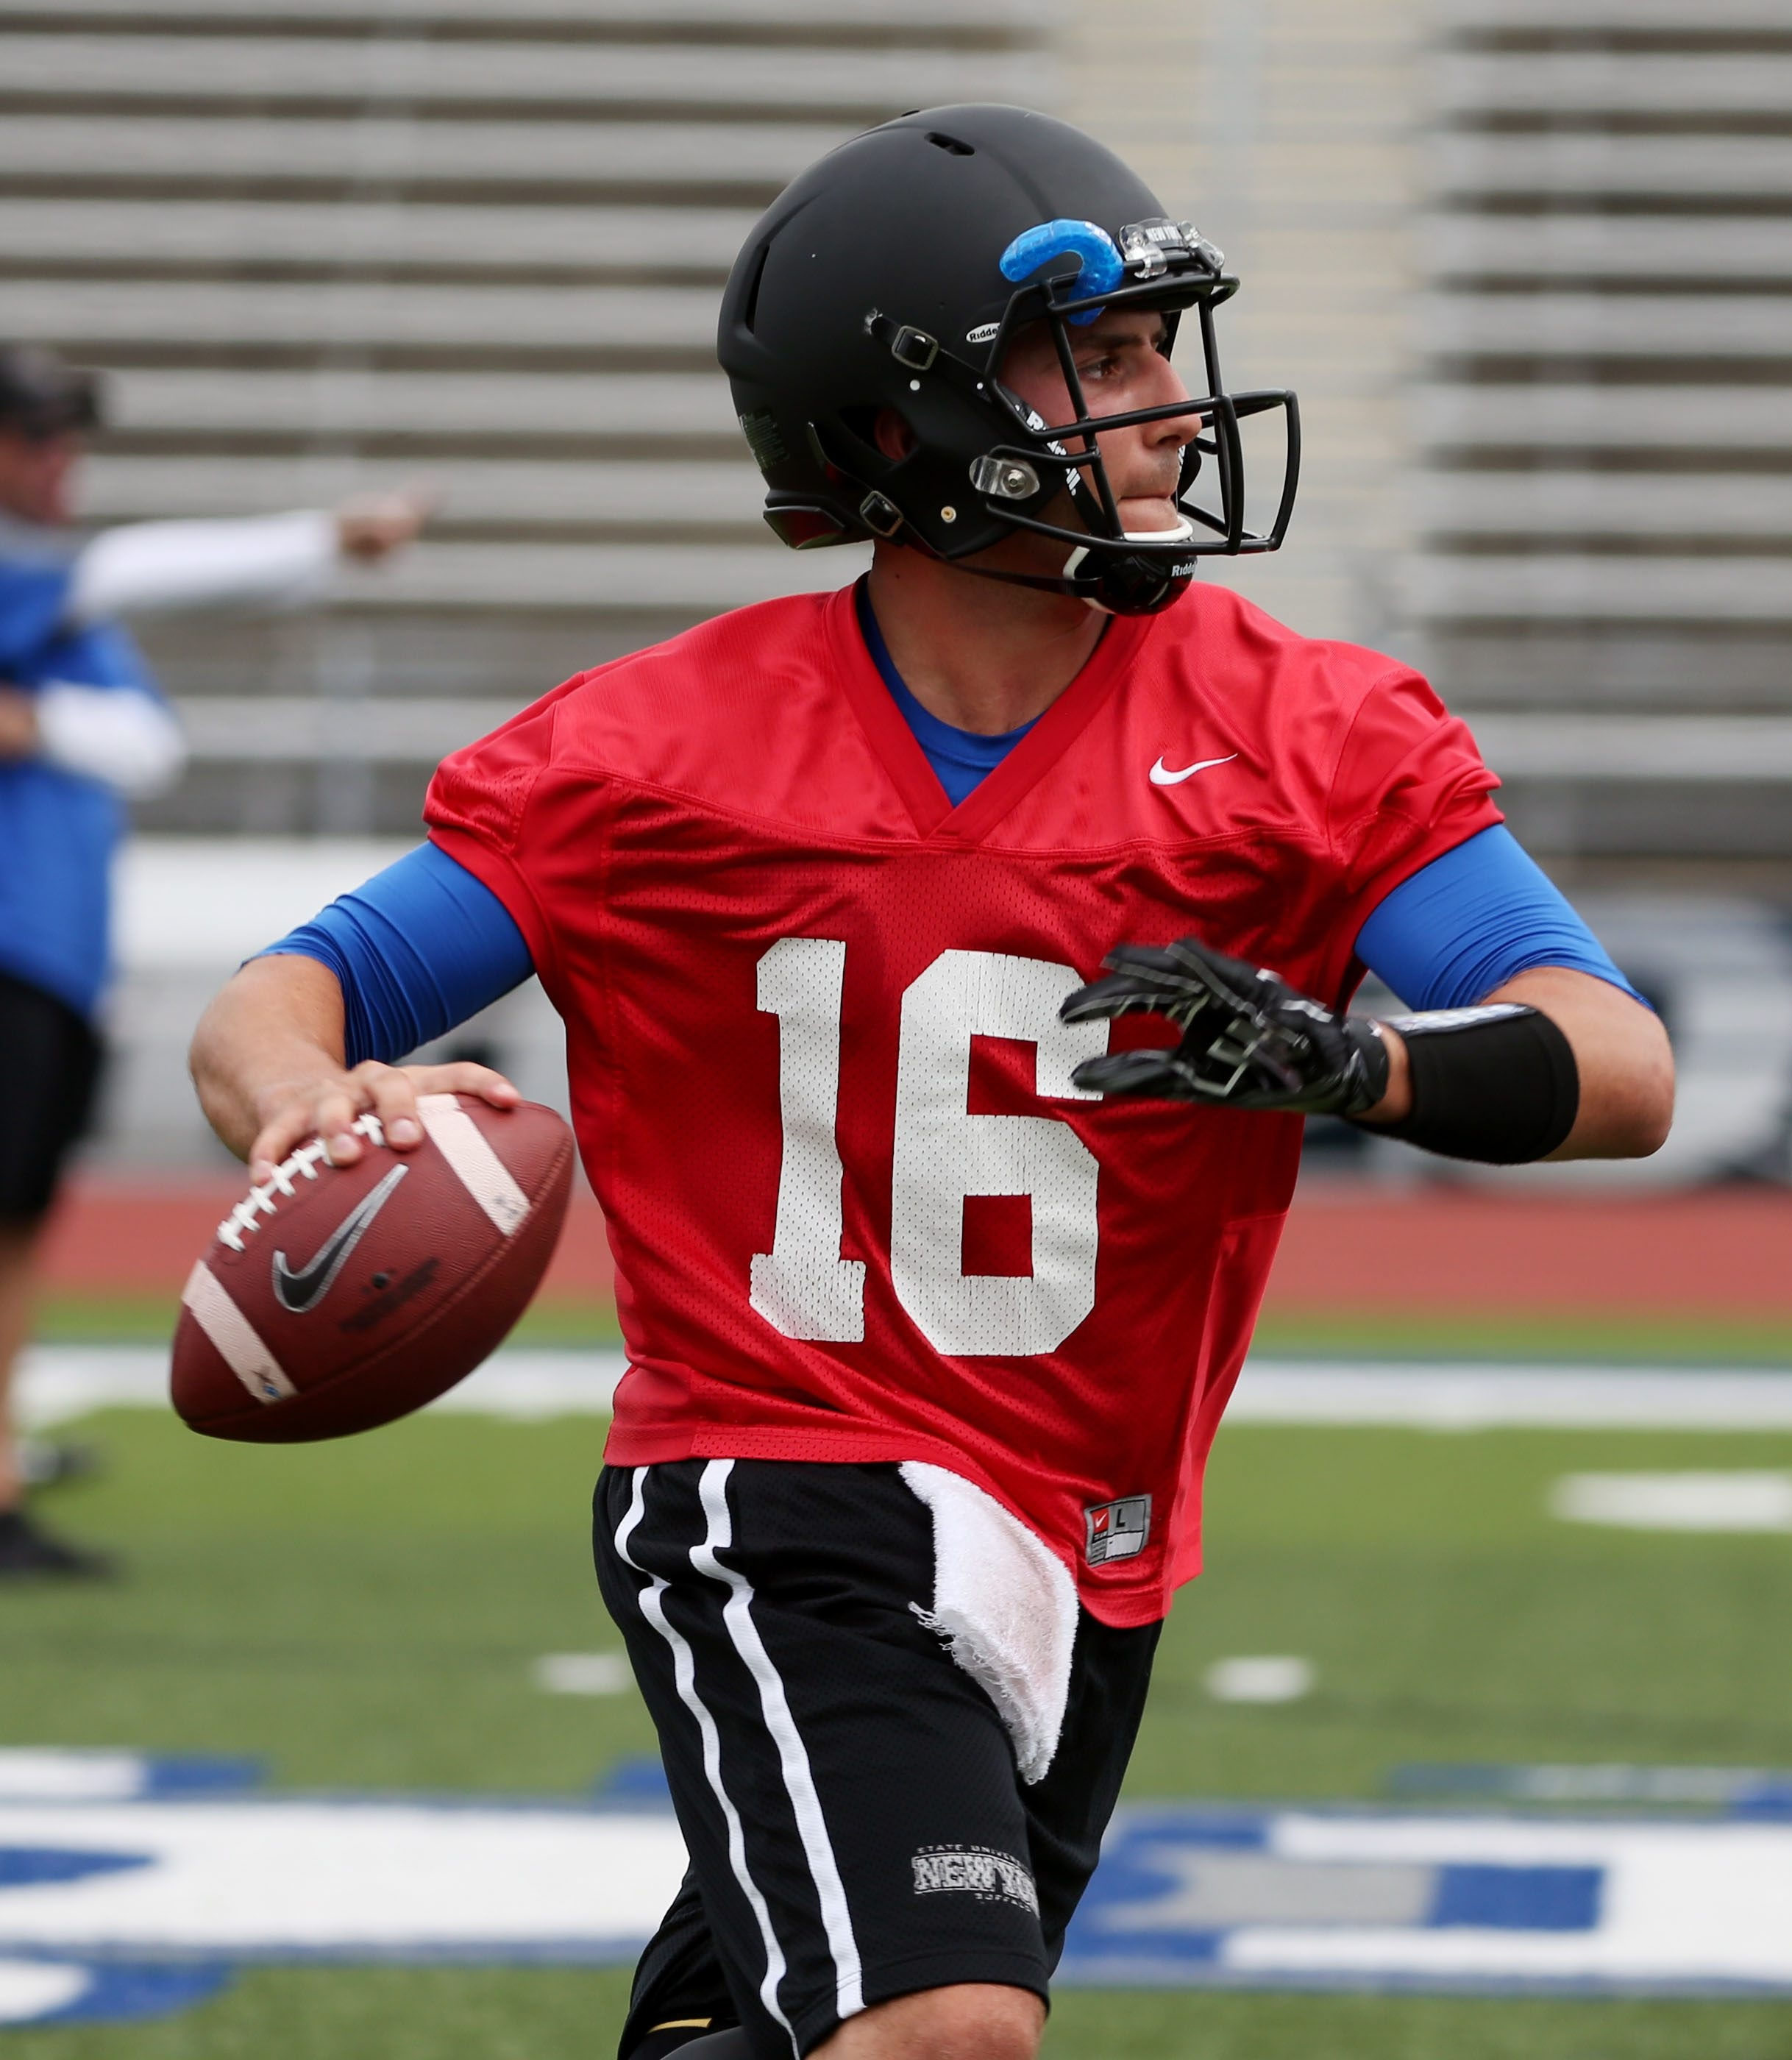 Quarterback Joe Licata needs another strong season to become the all-time leading passer at UB.